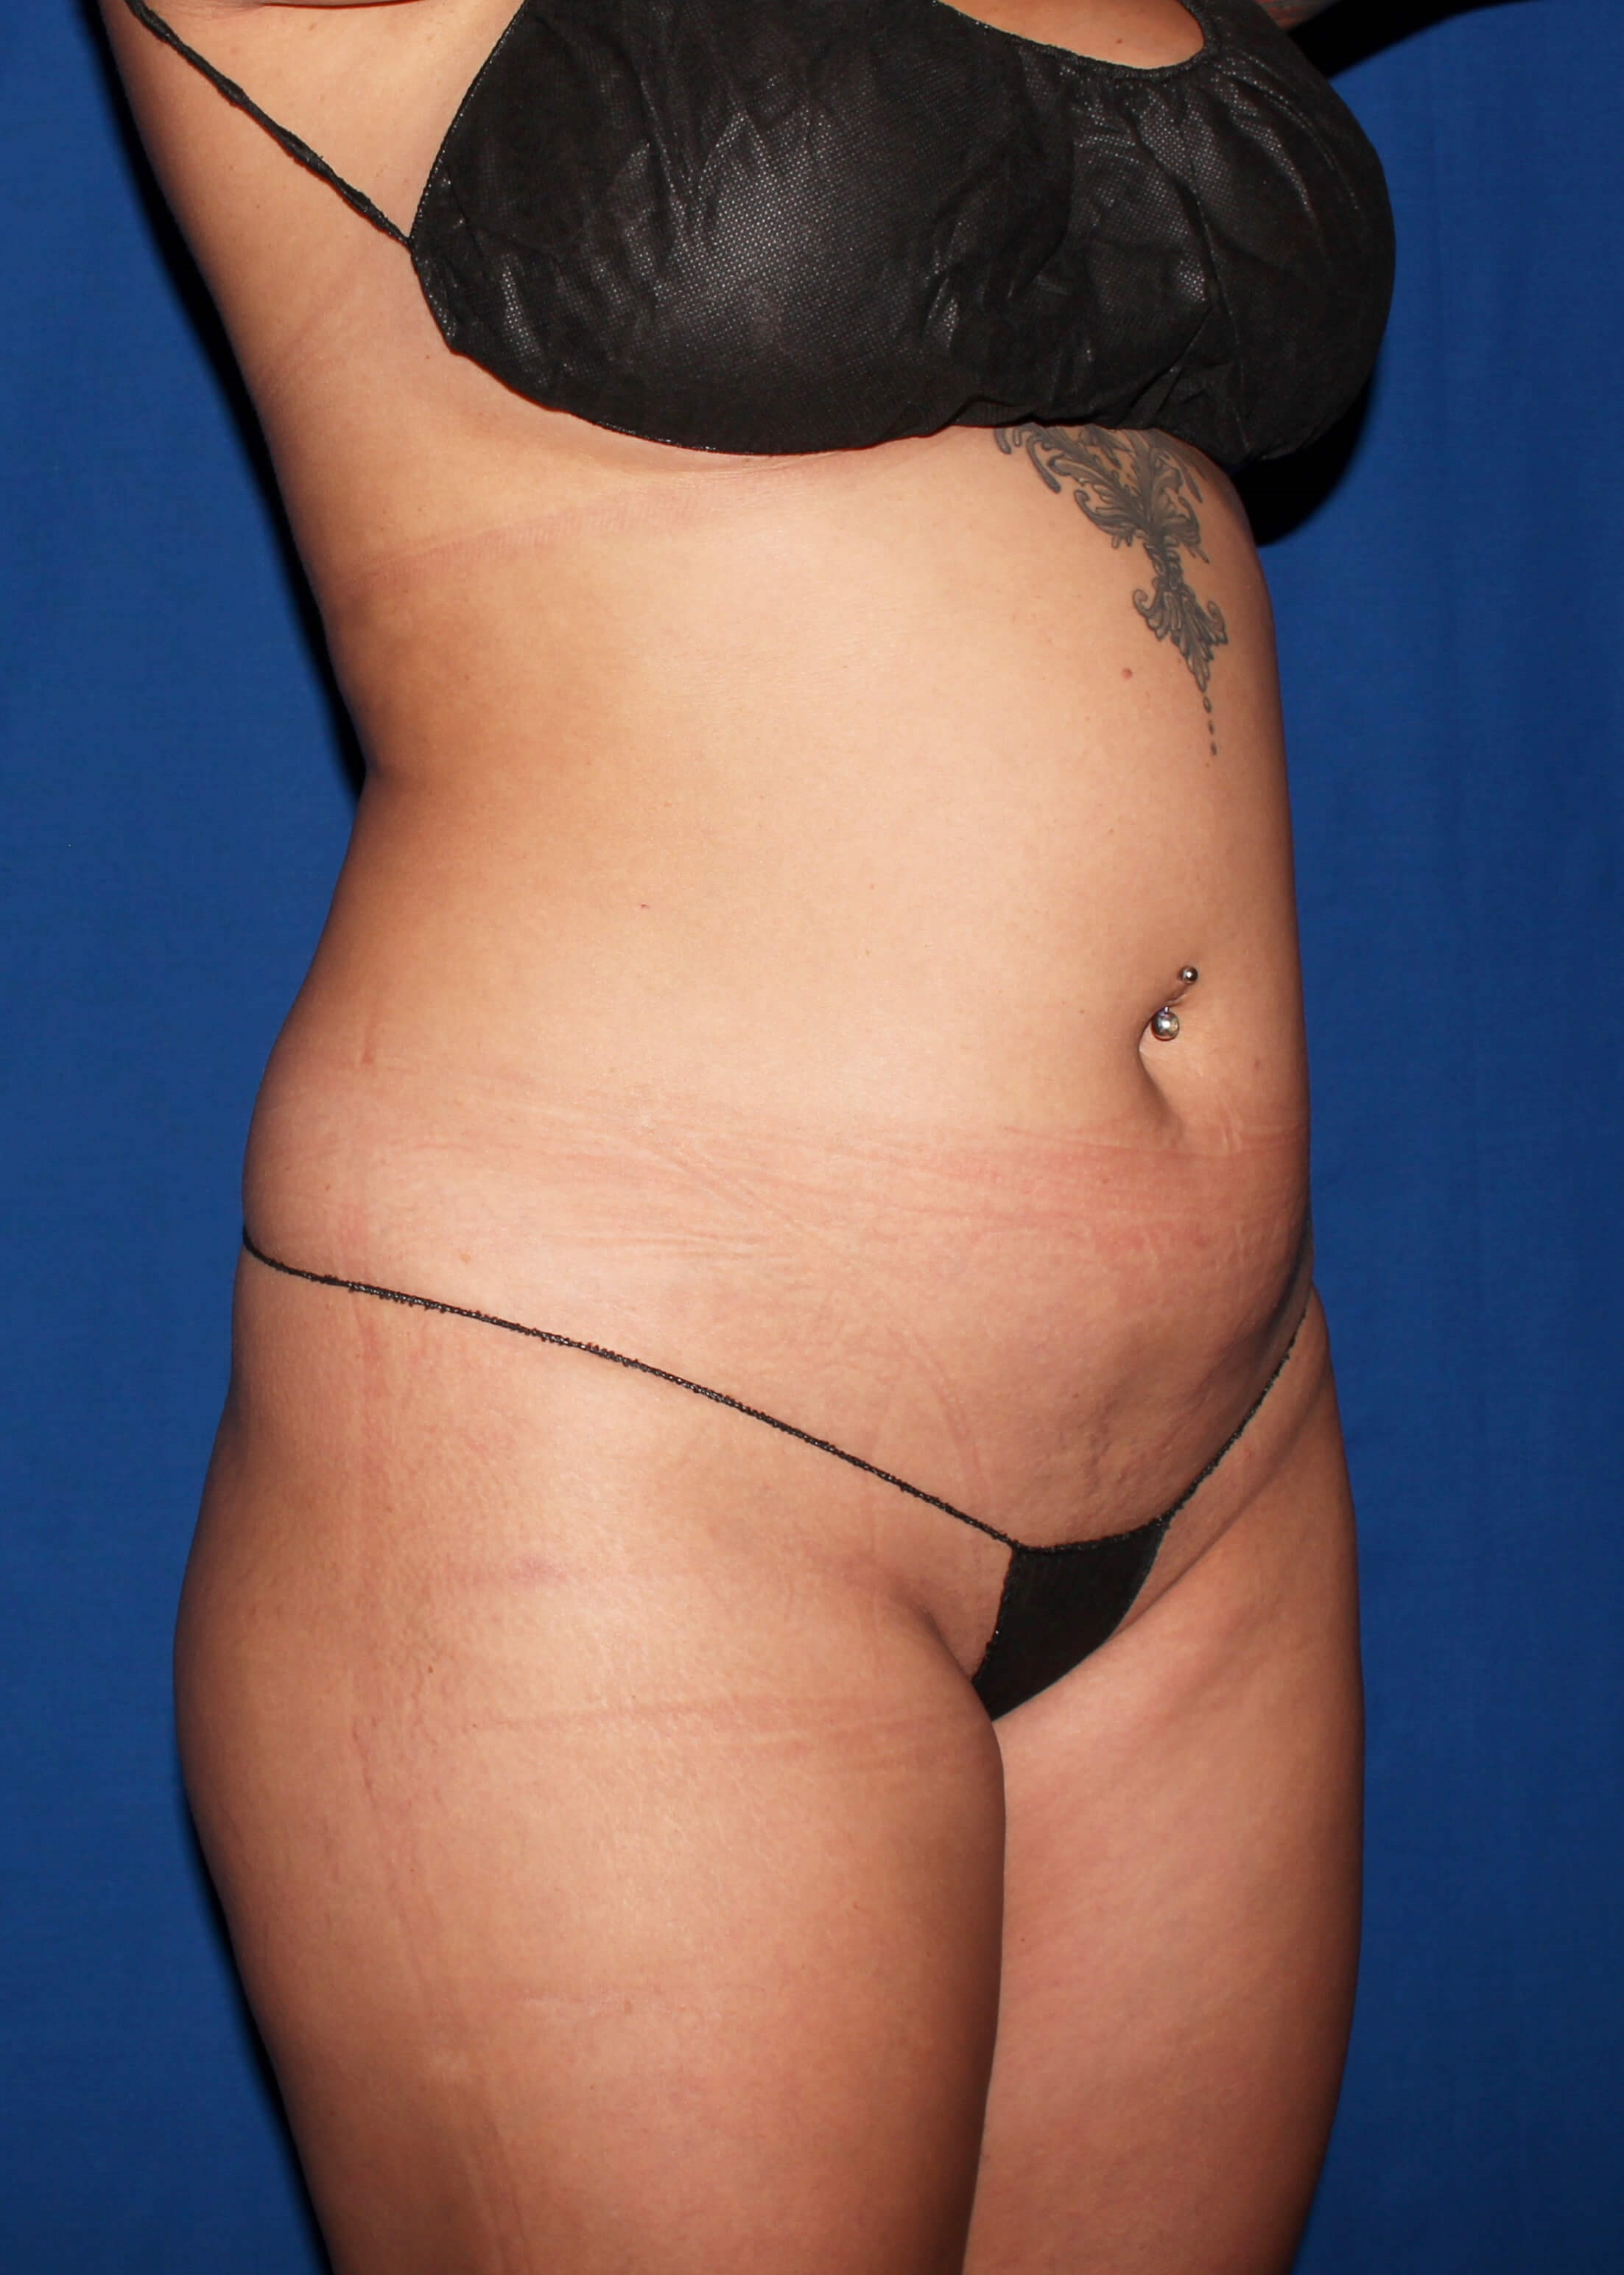 Before Liposuction - Right Oblique View